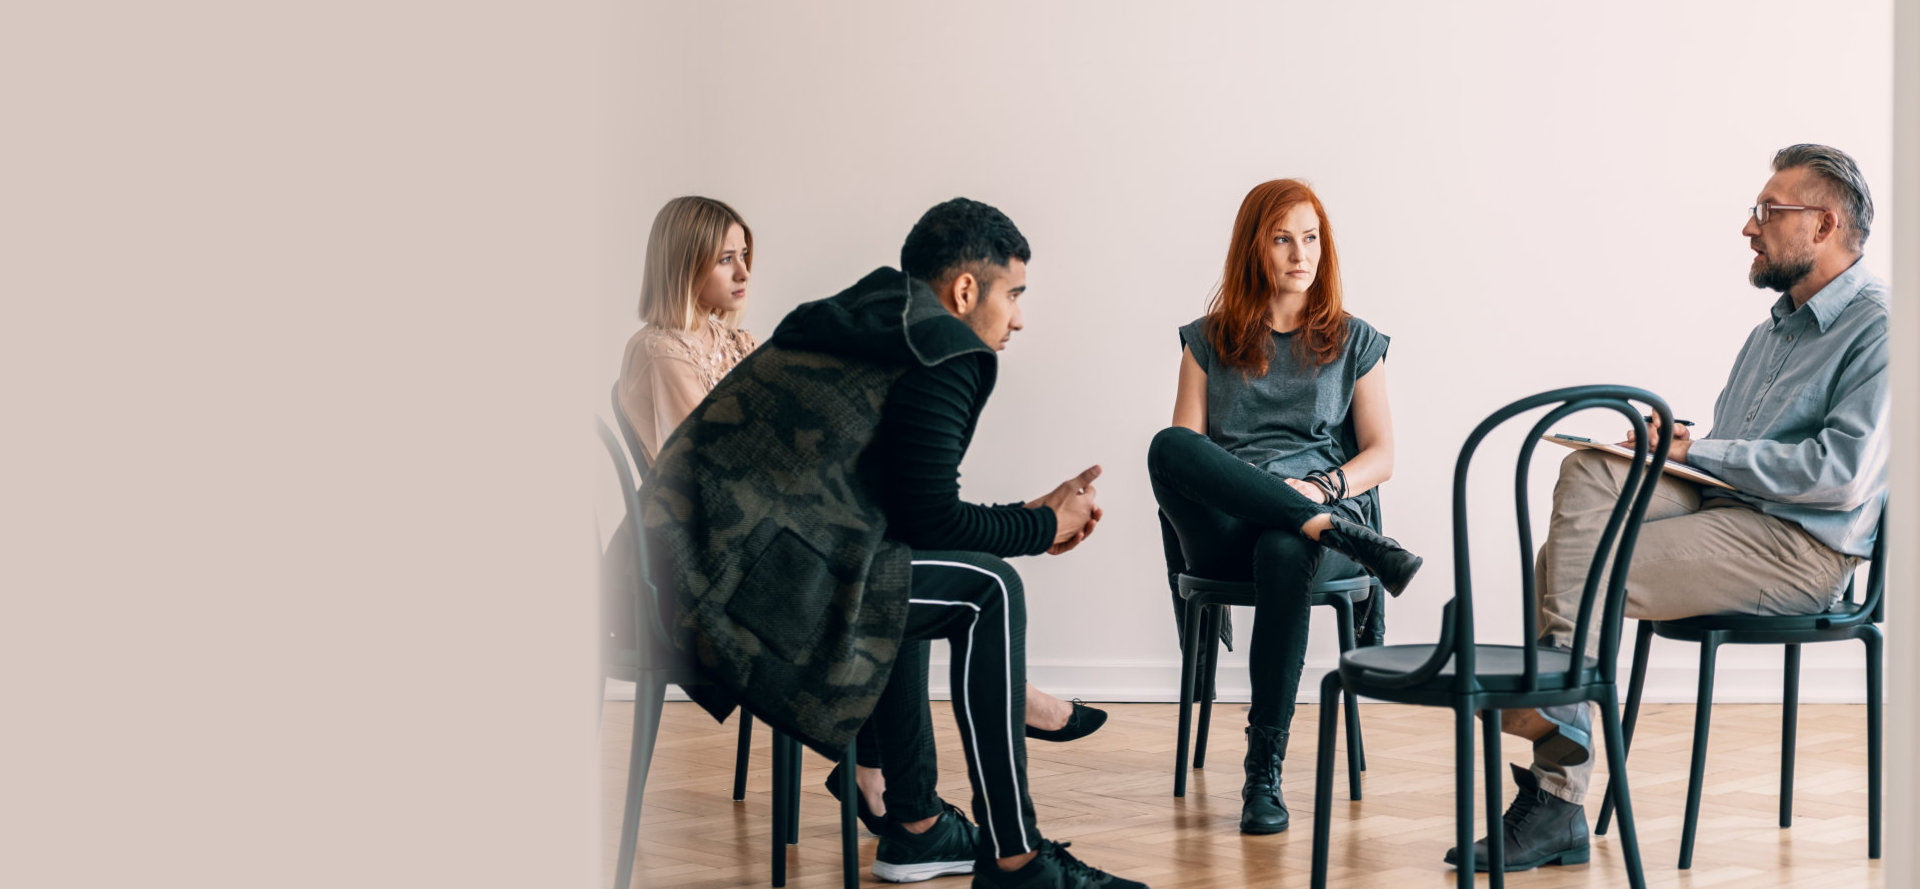 a group of people having a conversation sitting on the chair